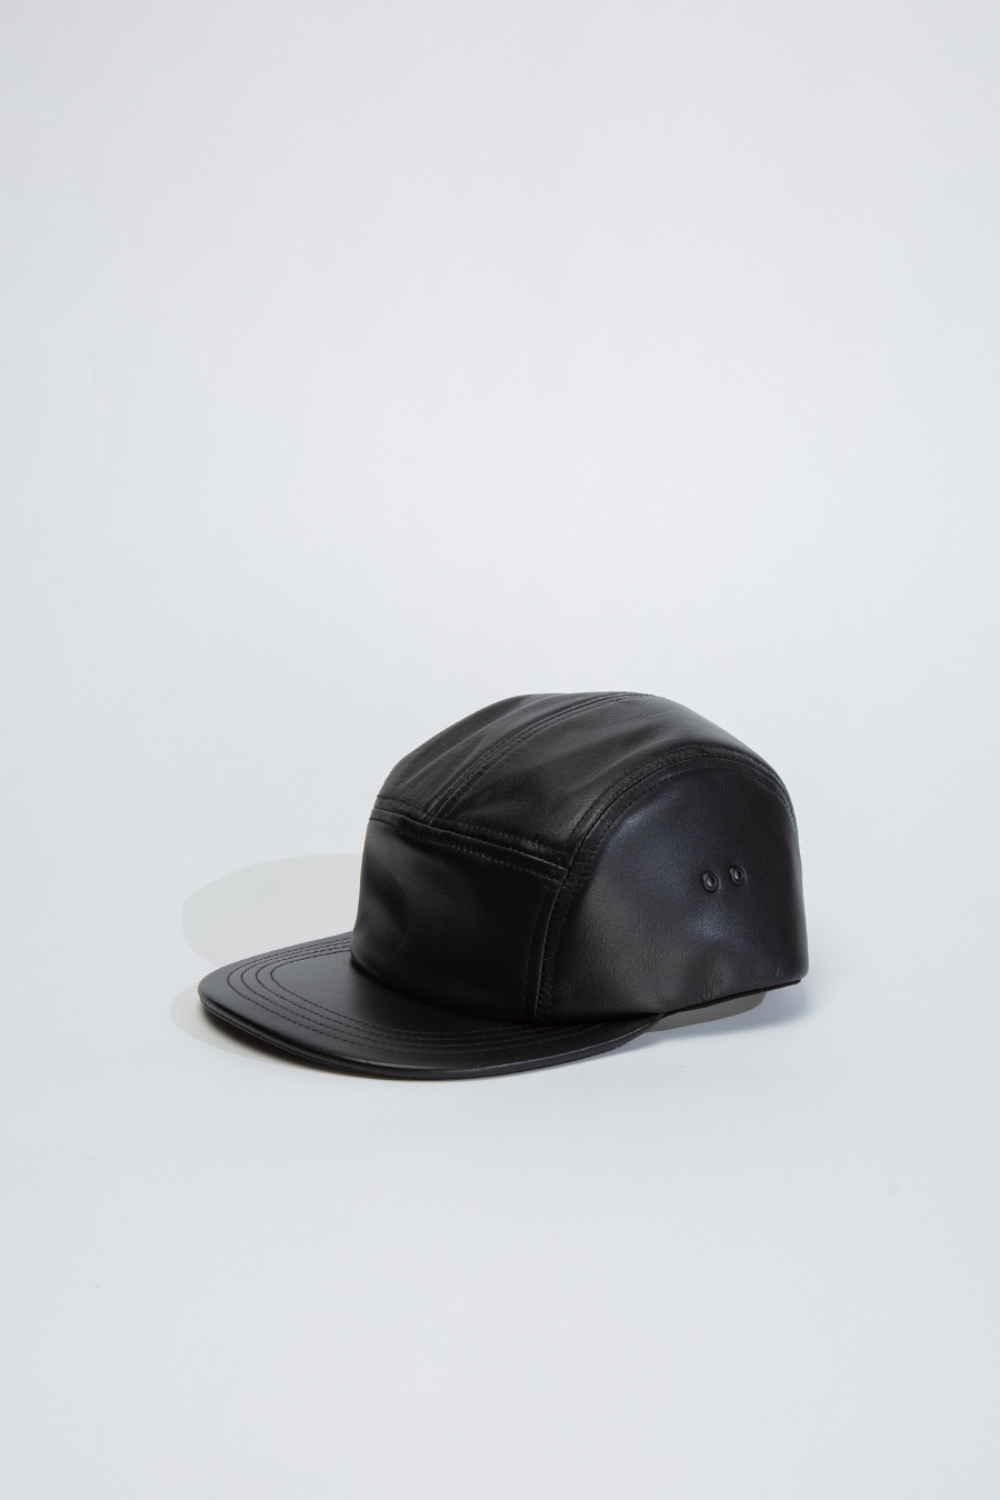 (MJ-RC-WJC)WATERPROOF JET CAP COW LEATHER BLACK